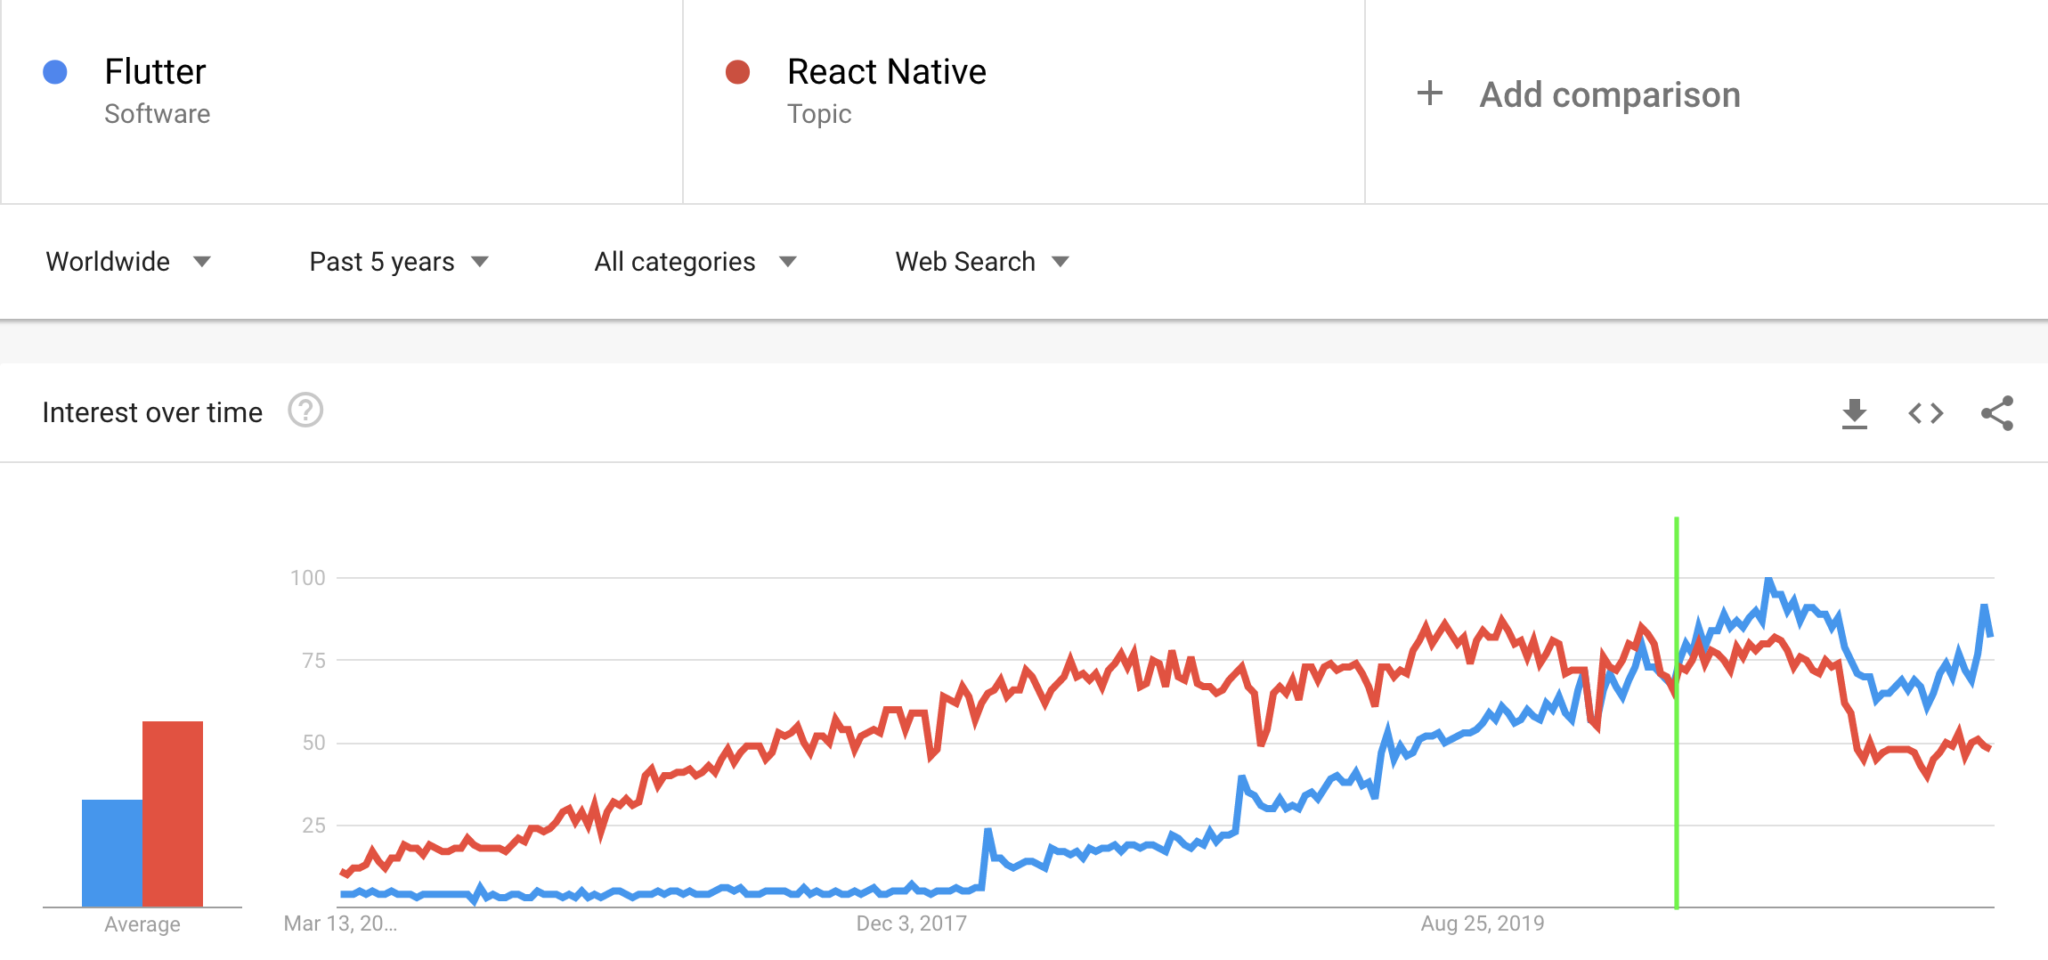 Flutter and React Native at Google Trends